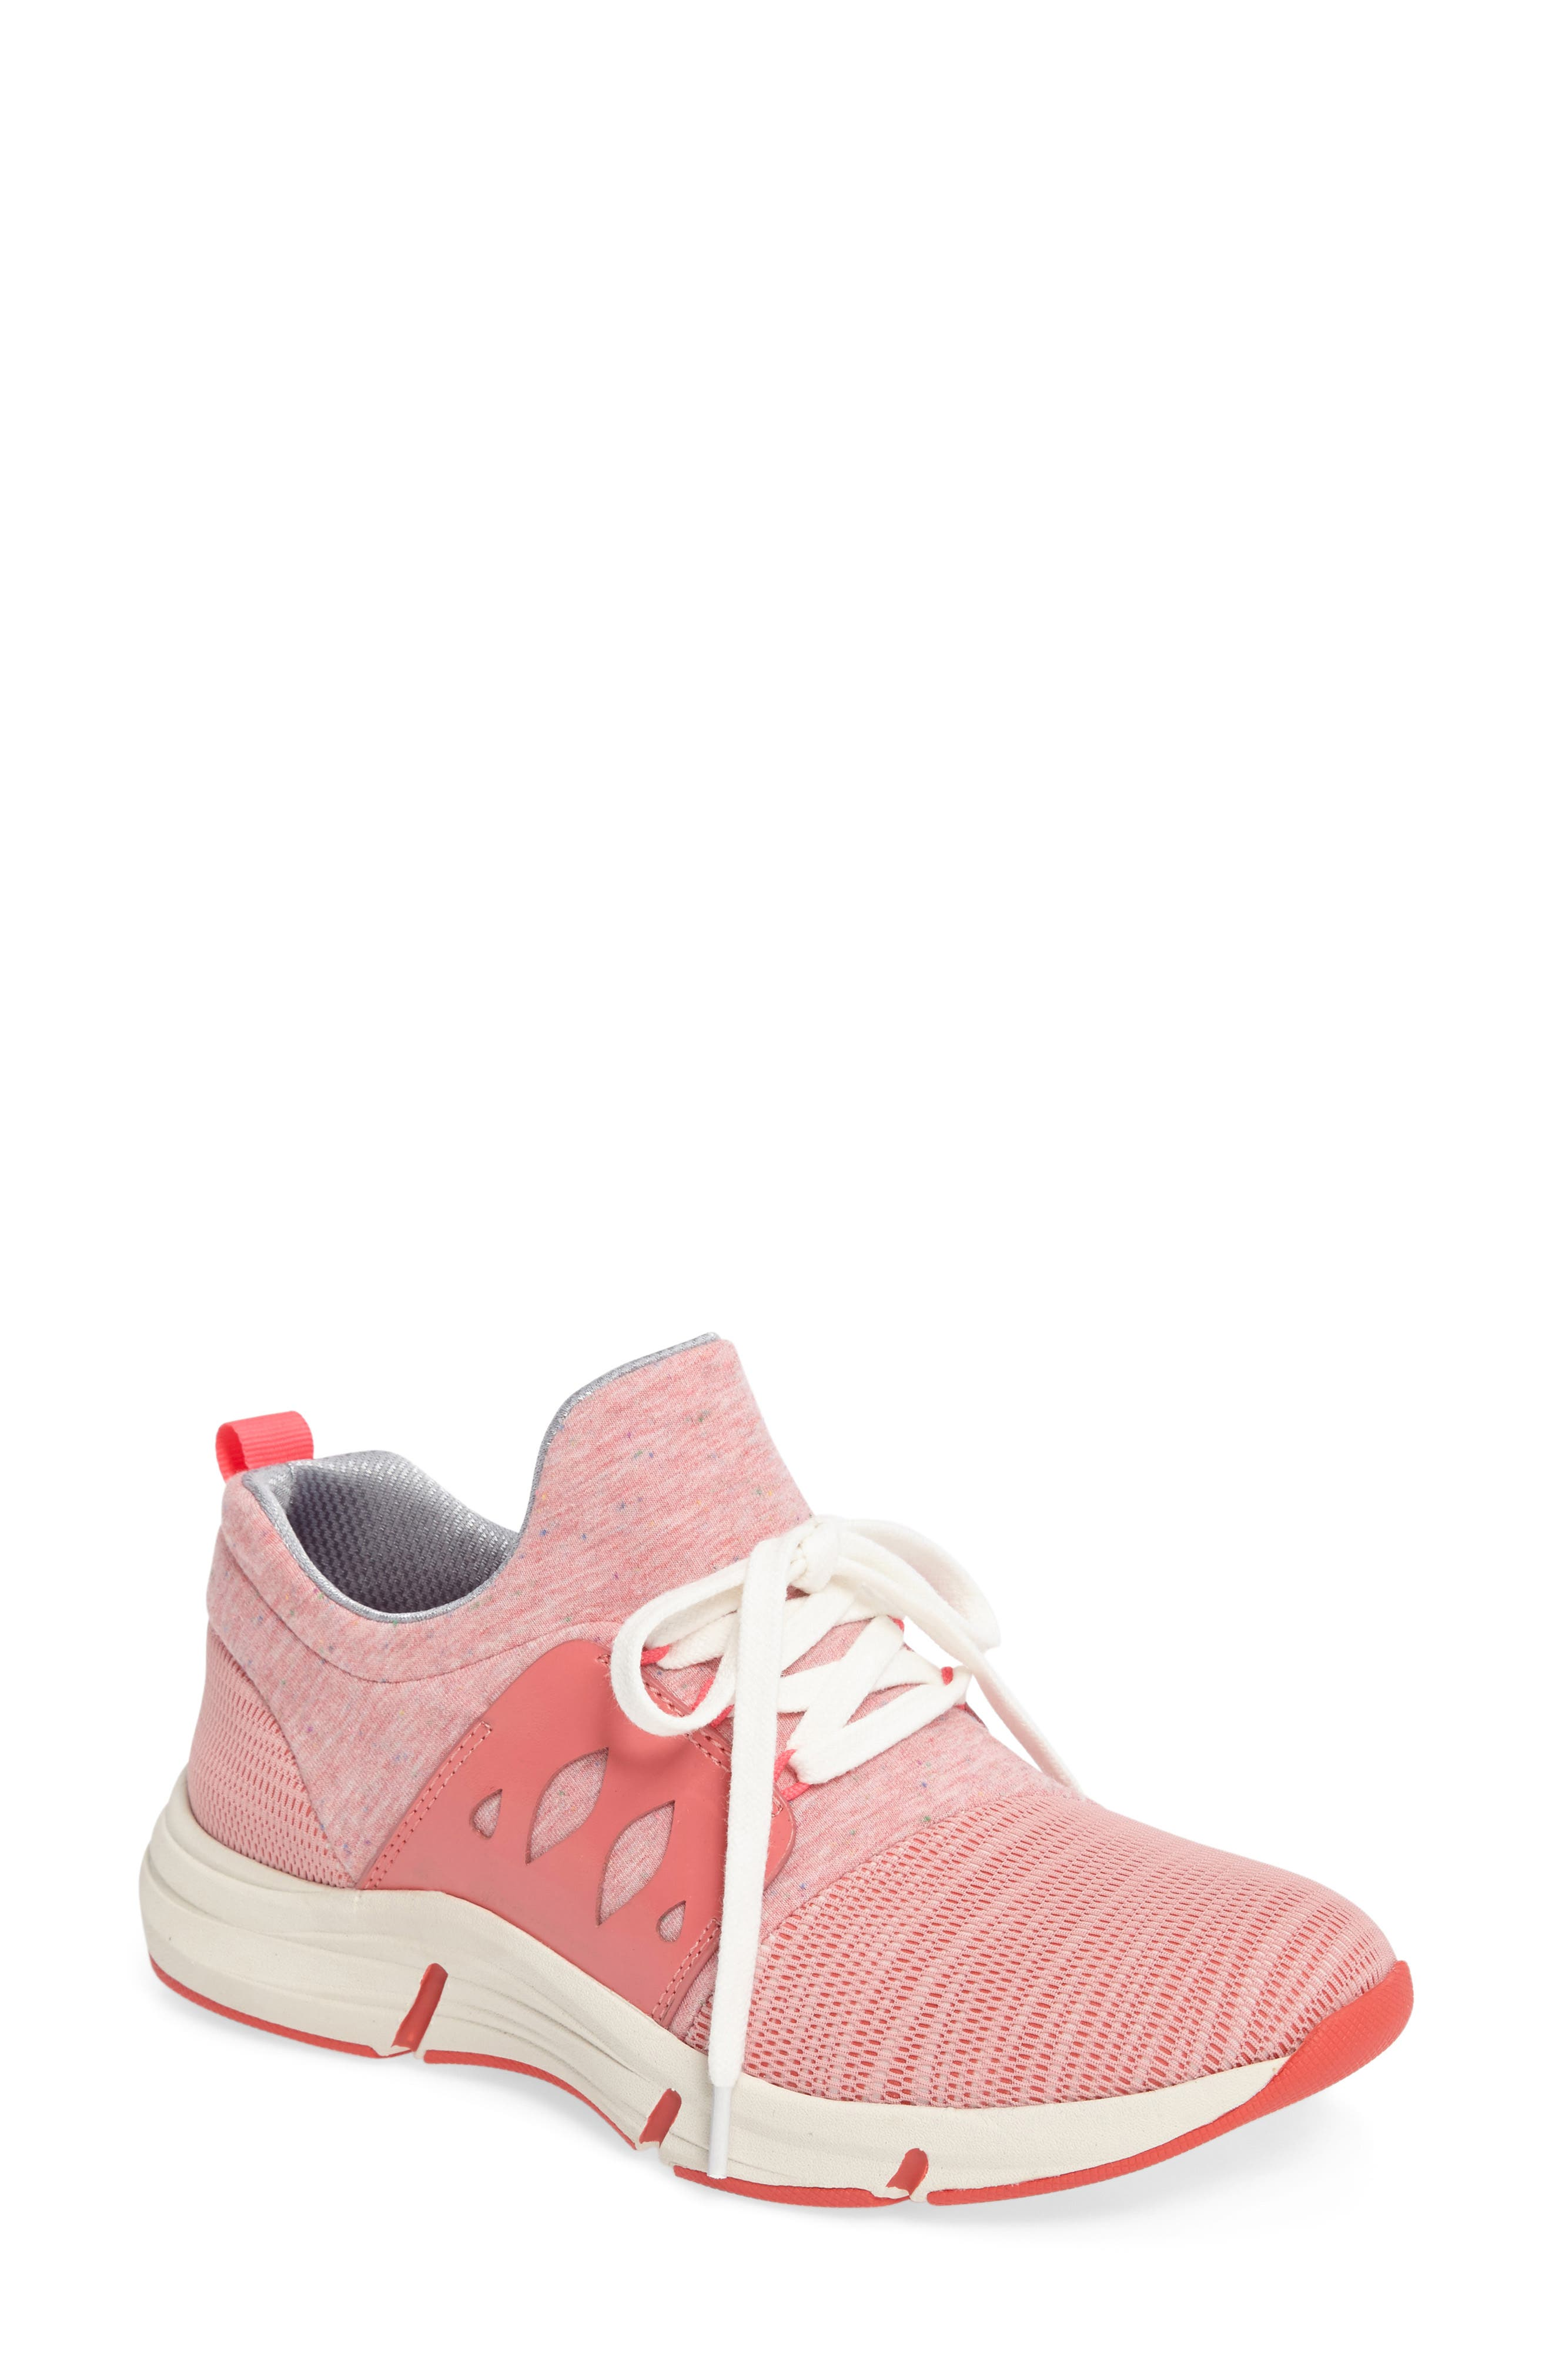 Ordell Sneaker,                             Main thumbnail 1, color,                             PINK FABRIC